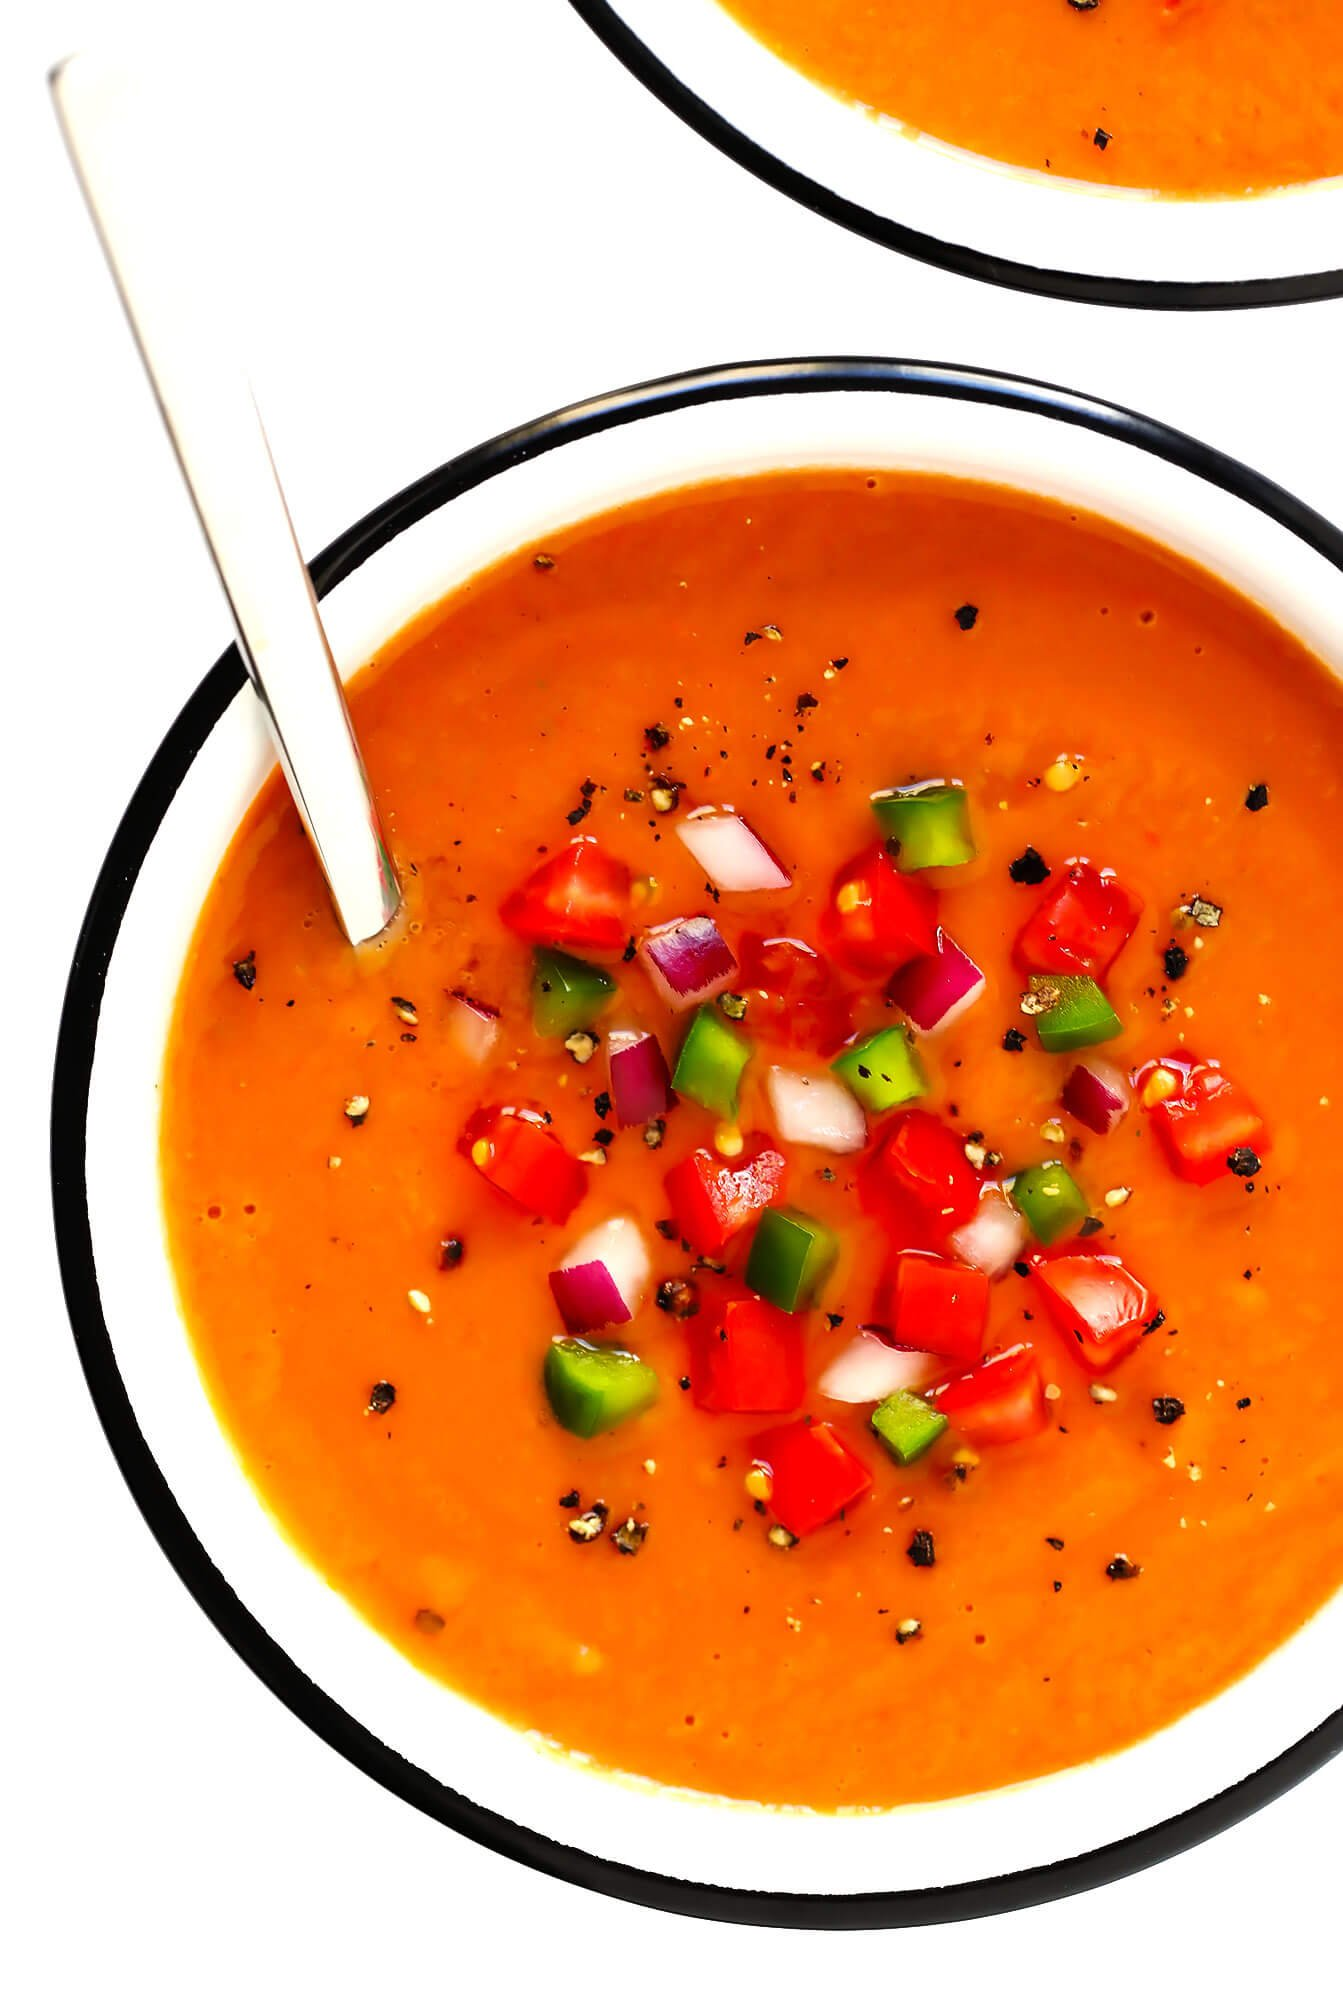 Bowl of Spanish gazpacho, topped with tomato, green pepper and red onion